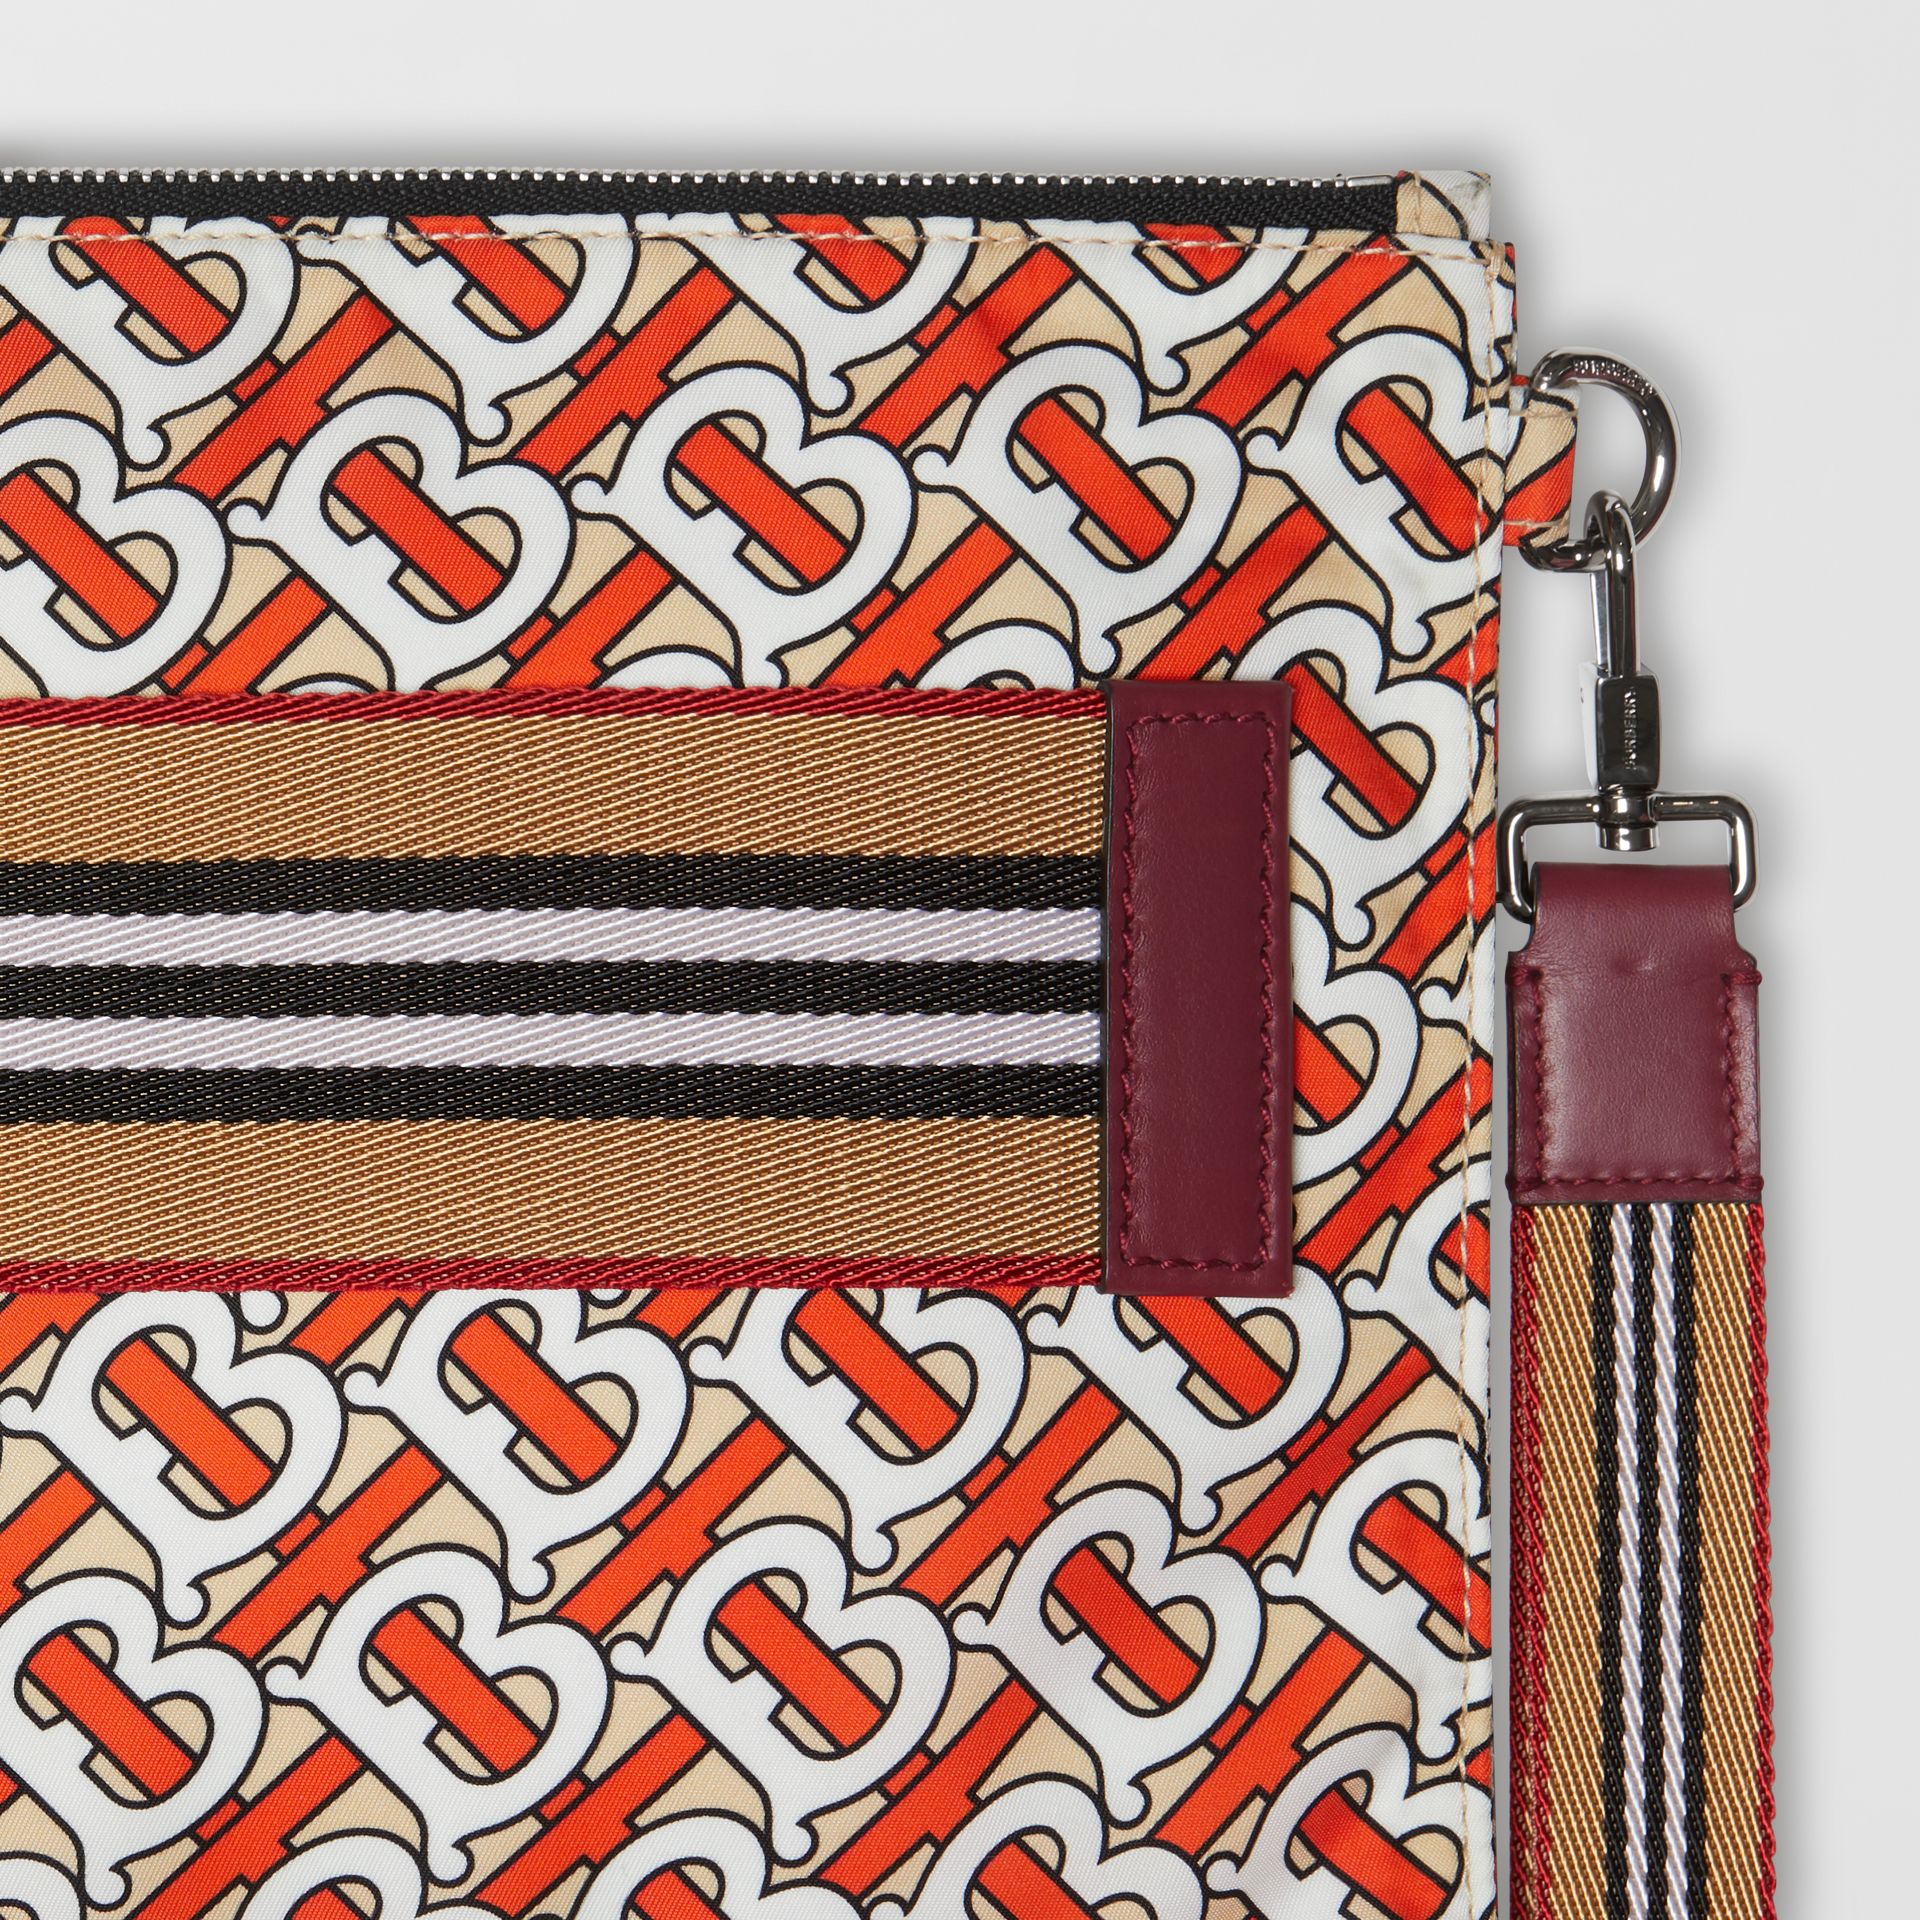 Monogram Print Zip Pouch in Vermilion | Burberry Singapore - gallery image 1